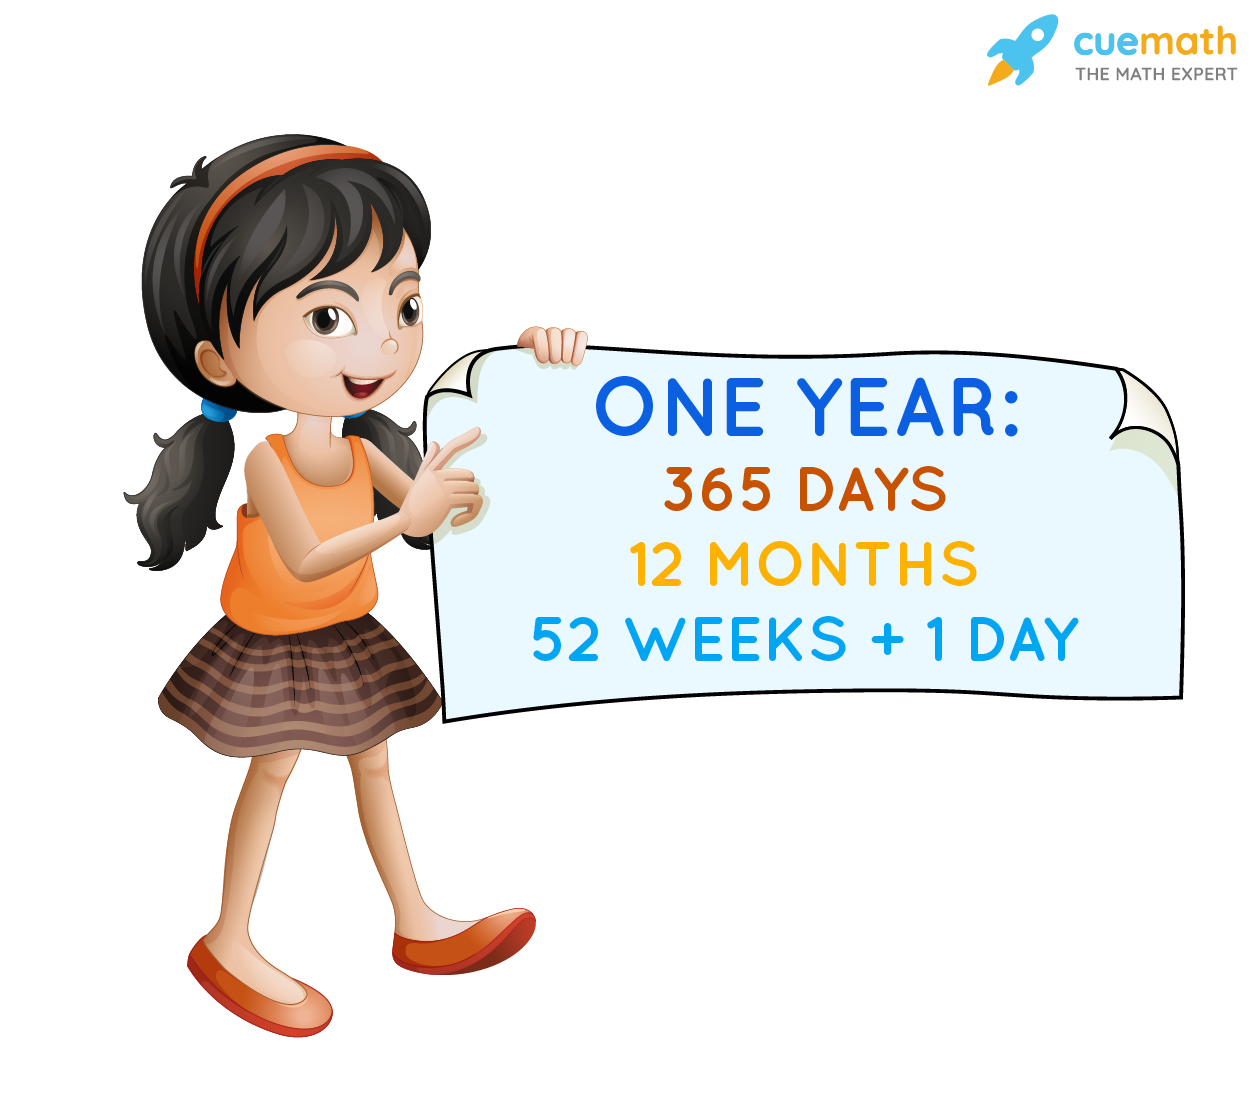 days, months and weeks